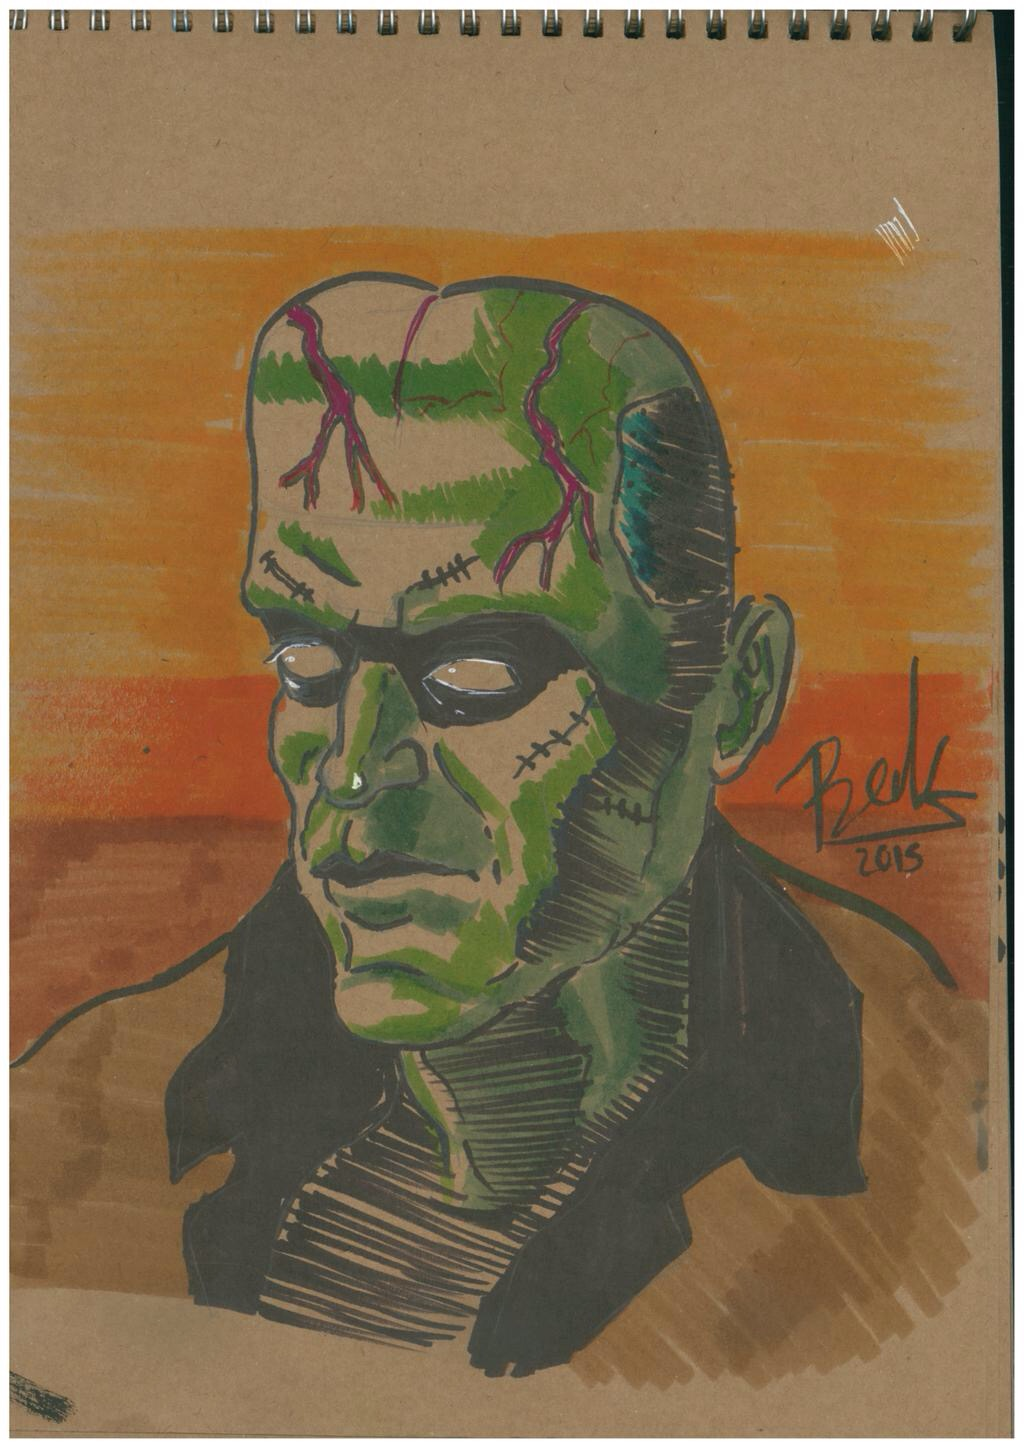 a critique of frankenstein Frankenstein is a classic gothic thriller novel by mary shelley read a review of the novel here.